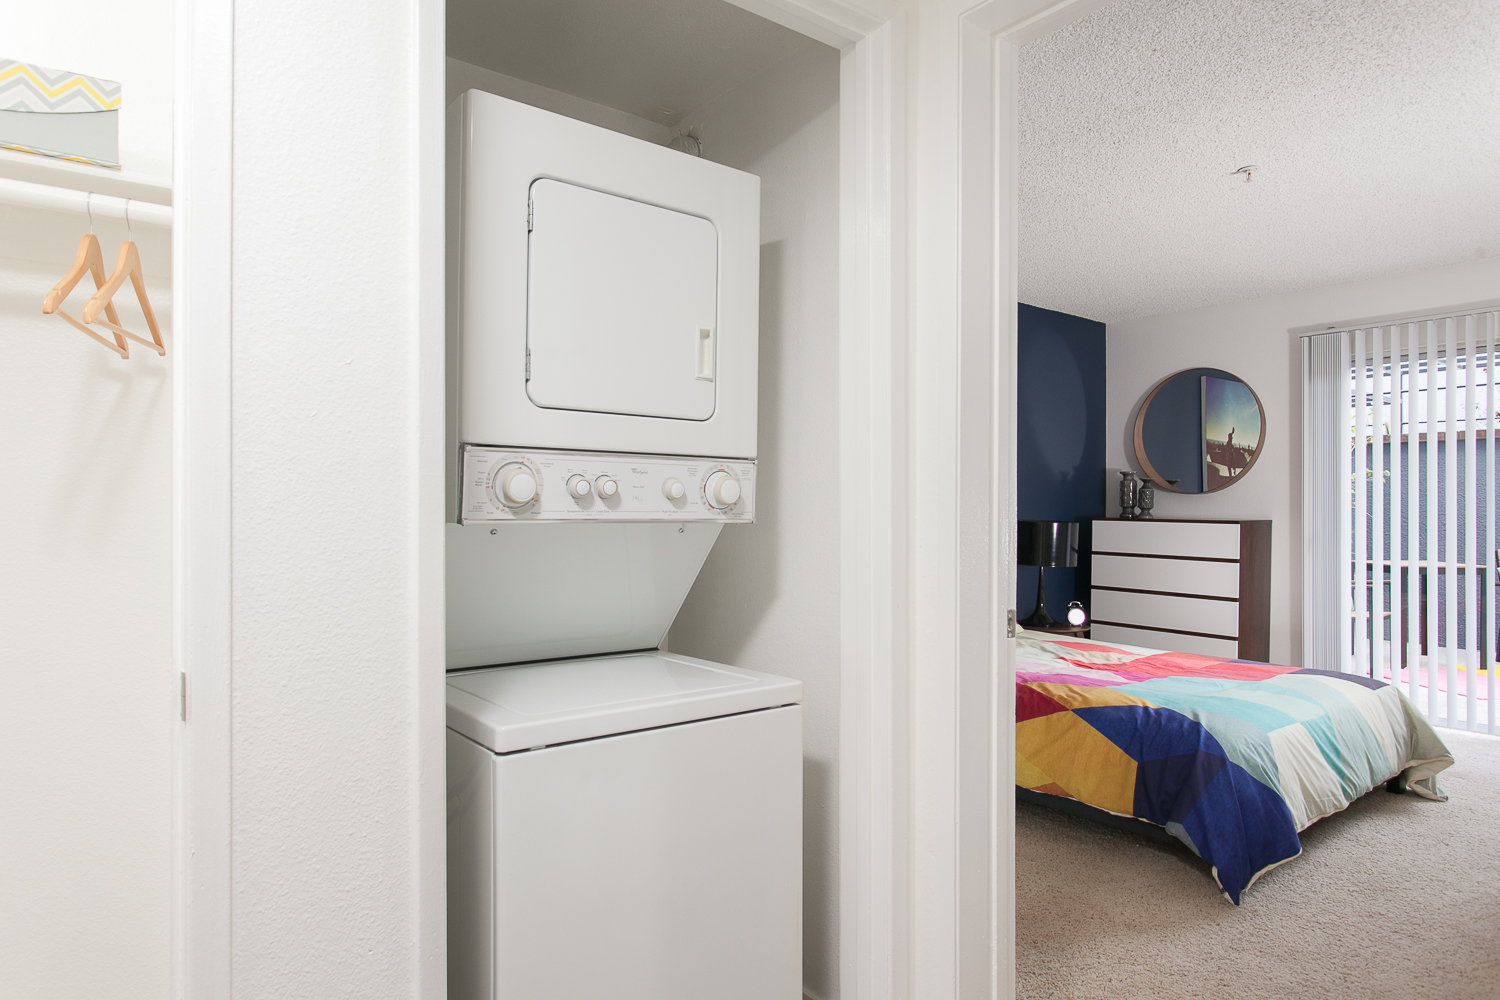 Apartment Features. Nest Thermostat ...